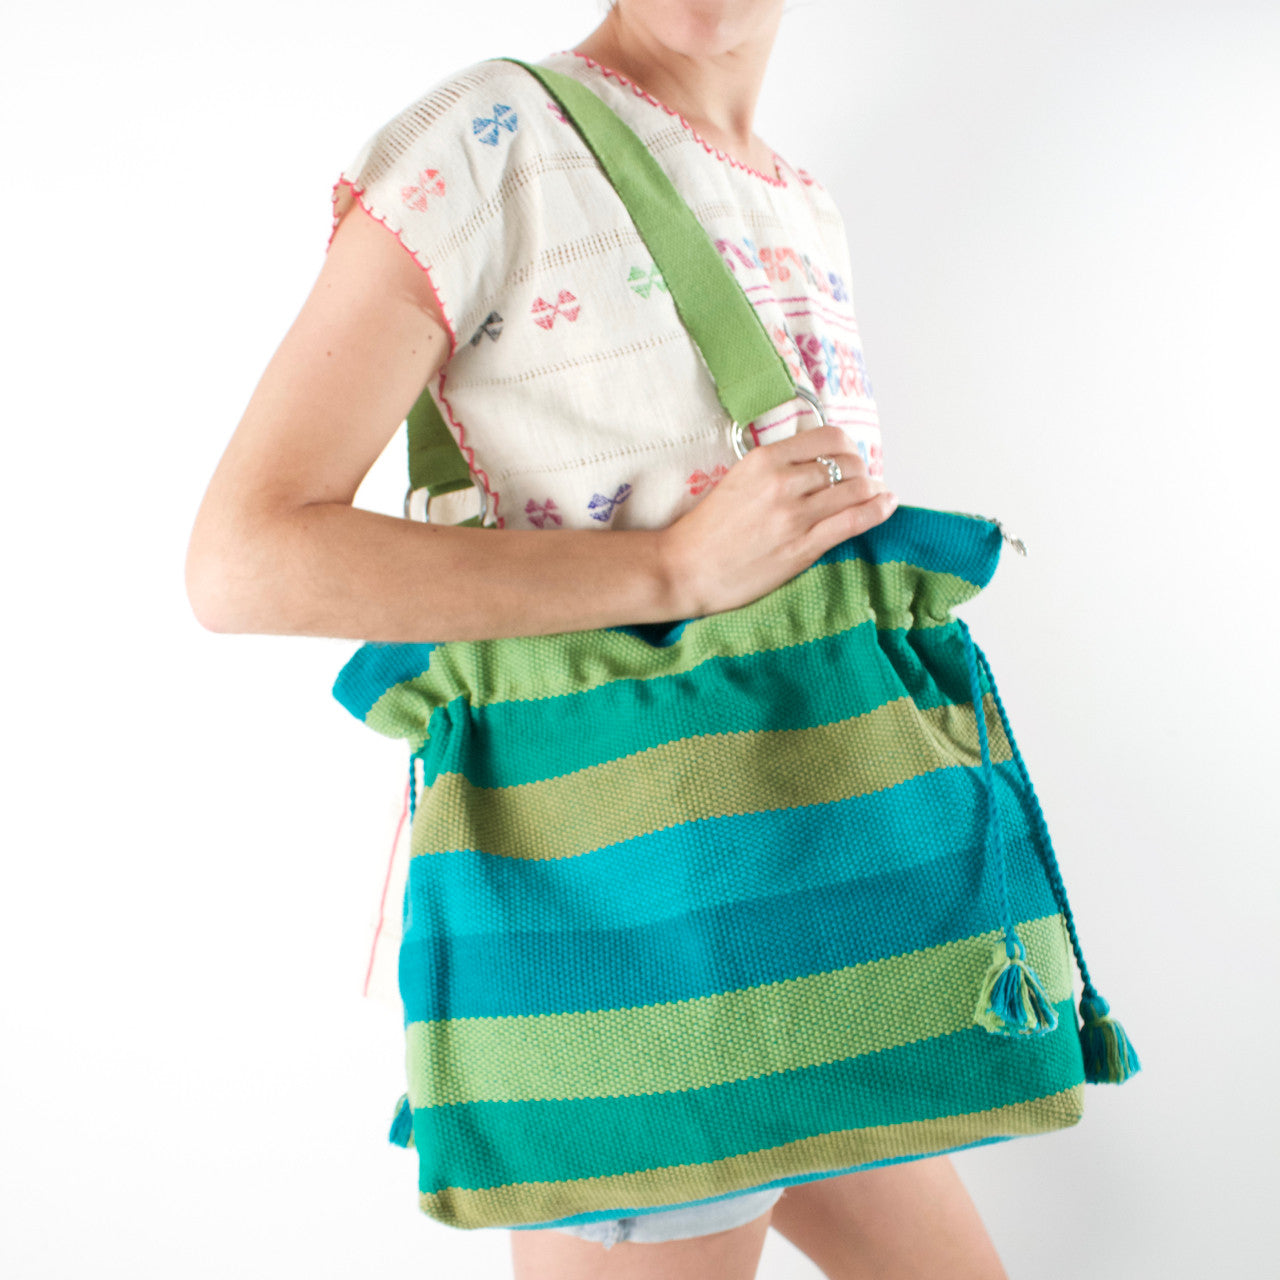 Jalieza Shoulder Bag  Shoulder Bag Green - Cielo Collective handmade Mexico Guatemala